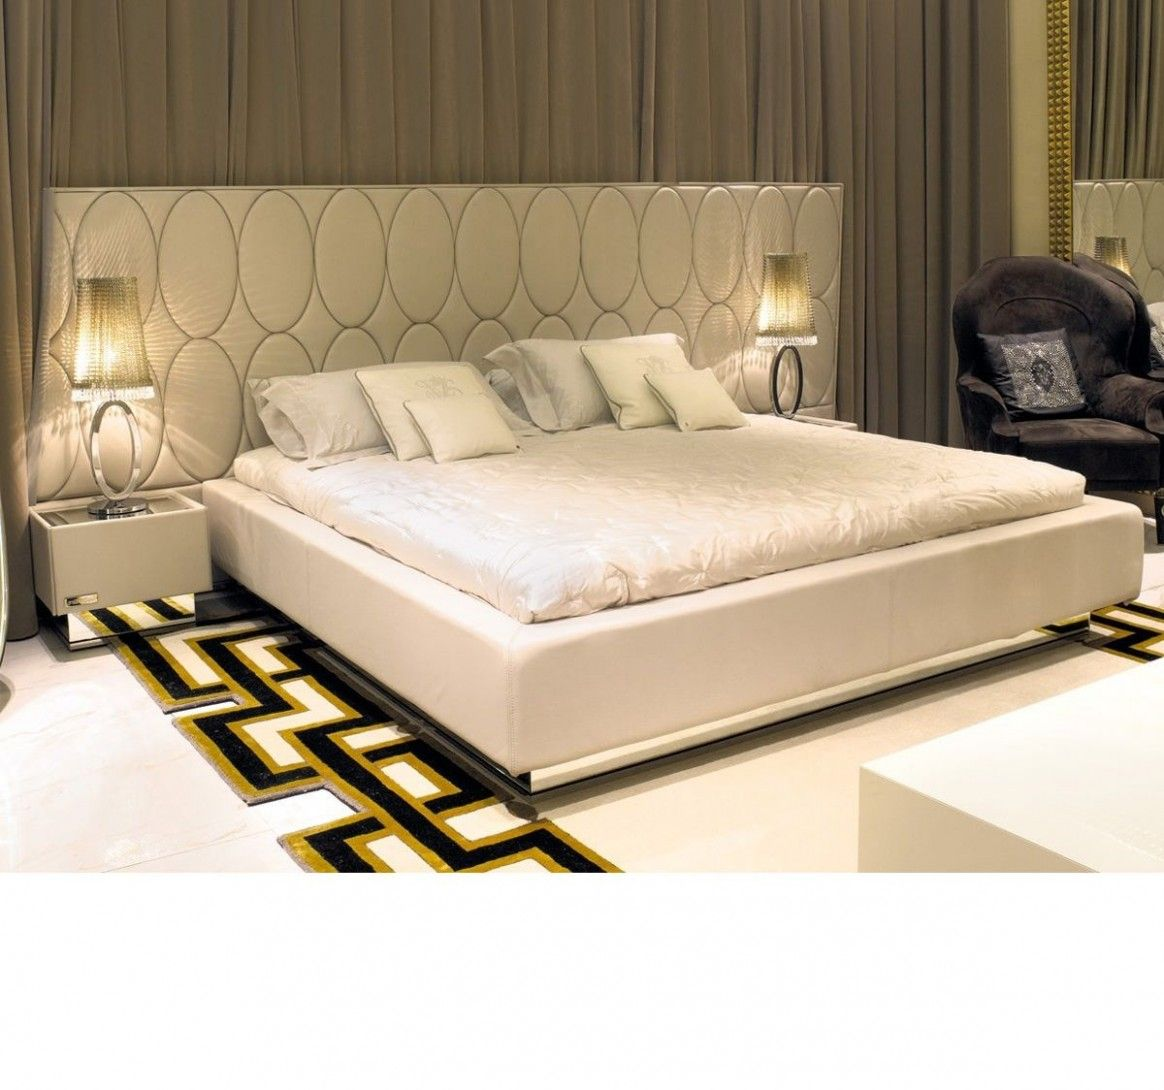 12 Magnificent High Quality Bedroom Furniture In 2021 Luxury Bedroom Furniture High Quality Bedroom Furniture Bedroom Furniture Design